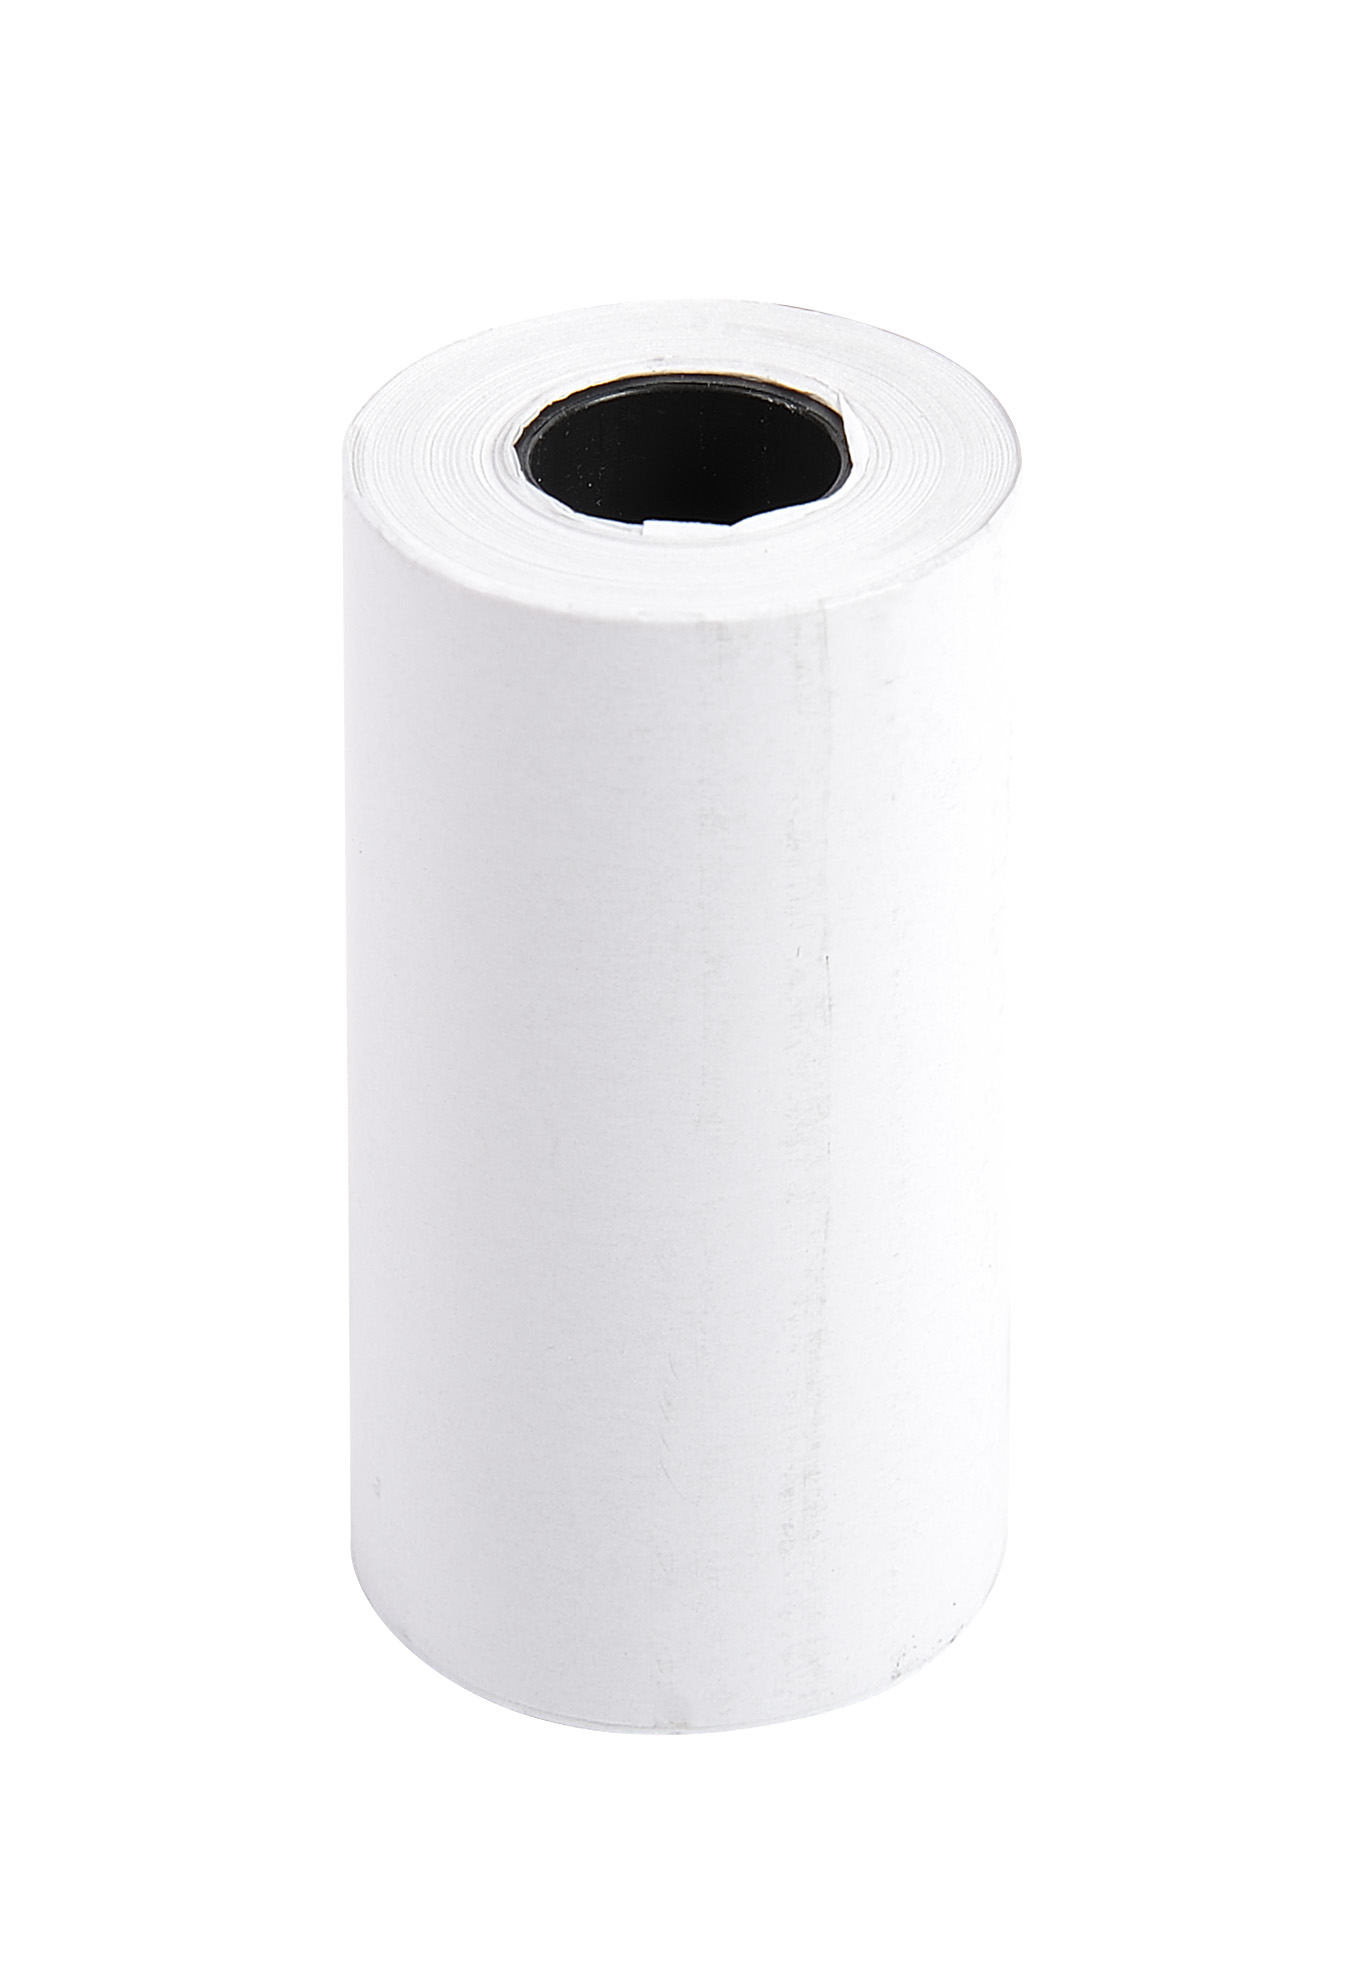 Tally Rolls Thermal Rolls BPA Free 1 ply 55g 57x30x12 PK20